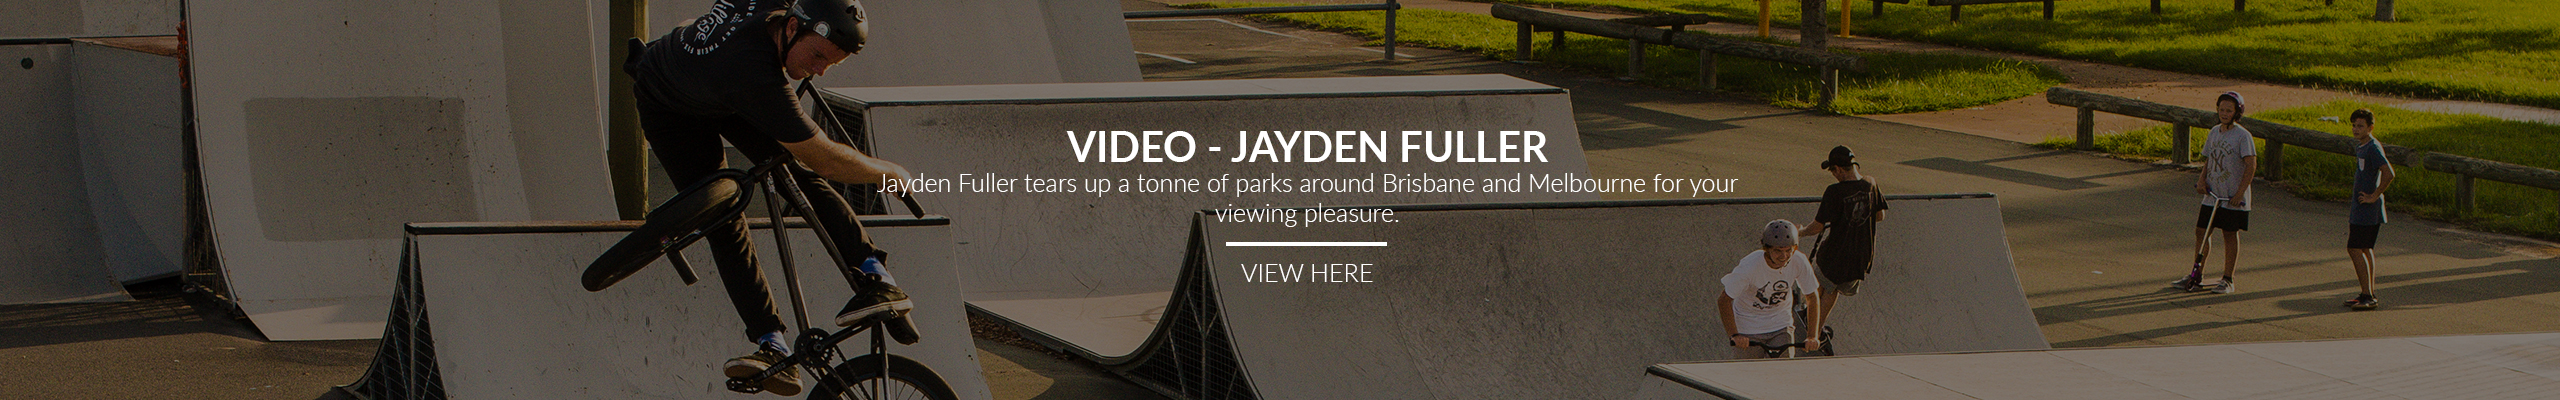 Jayden Fuller video